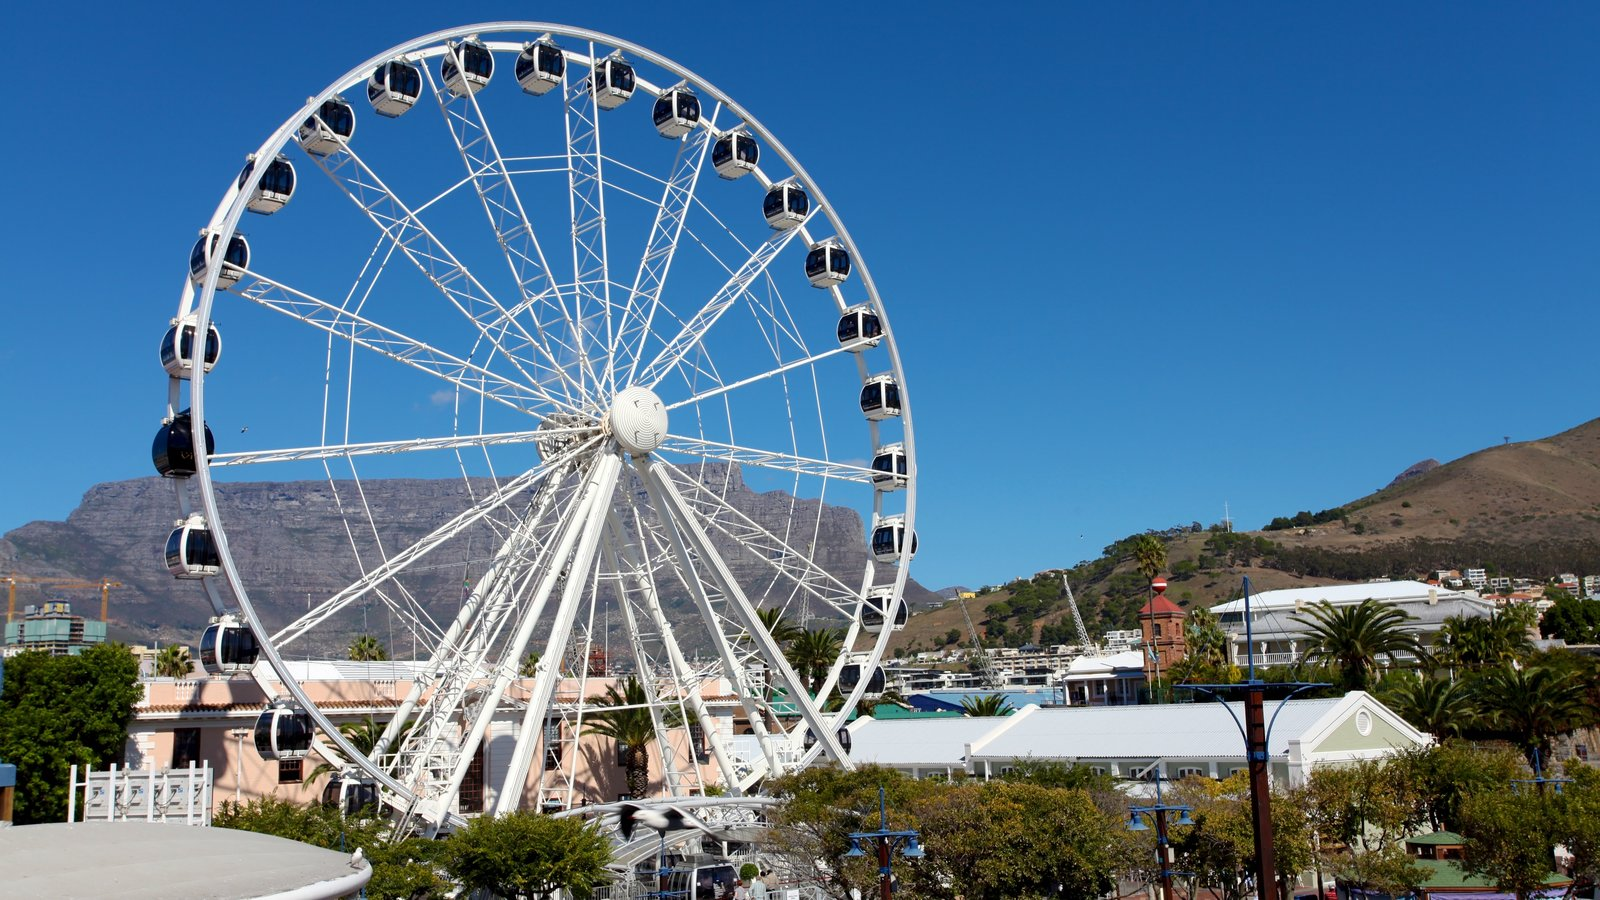 Victoria and Alfred Waterfront showing rides and modern architecture